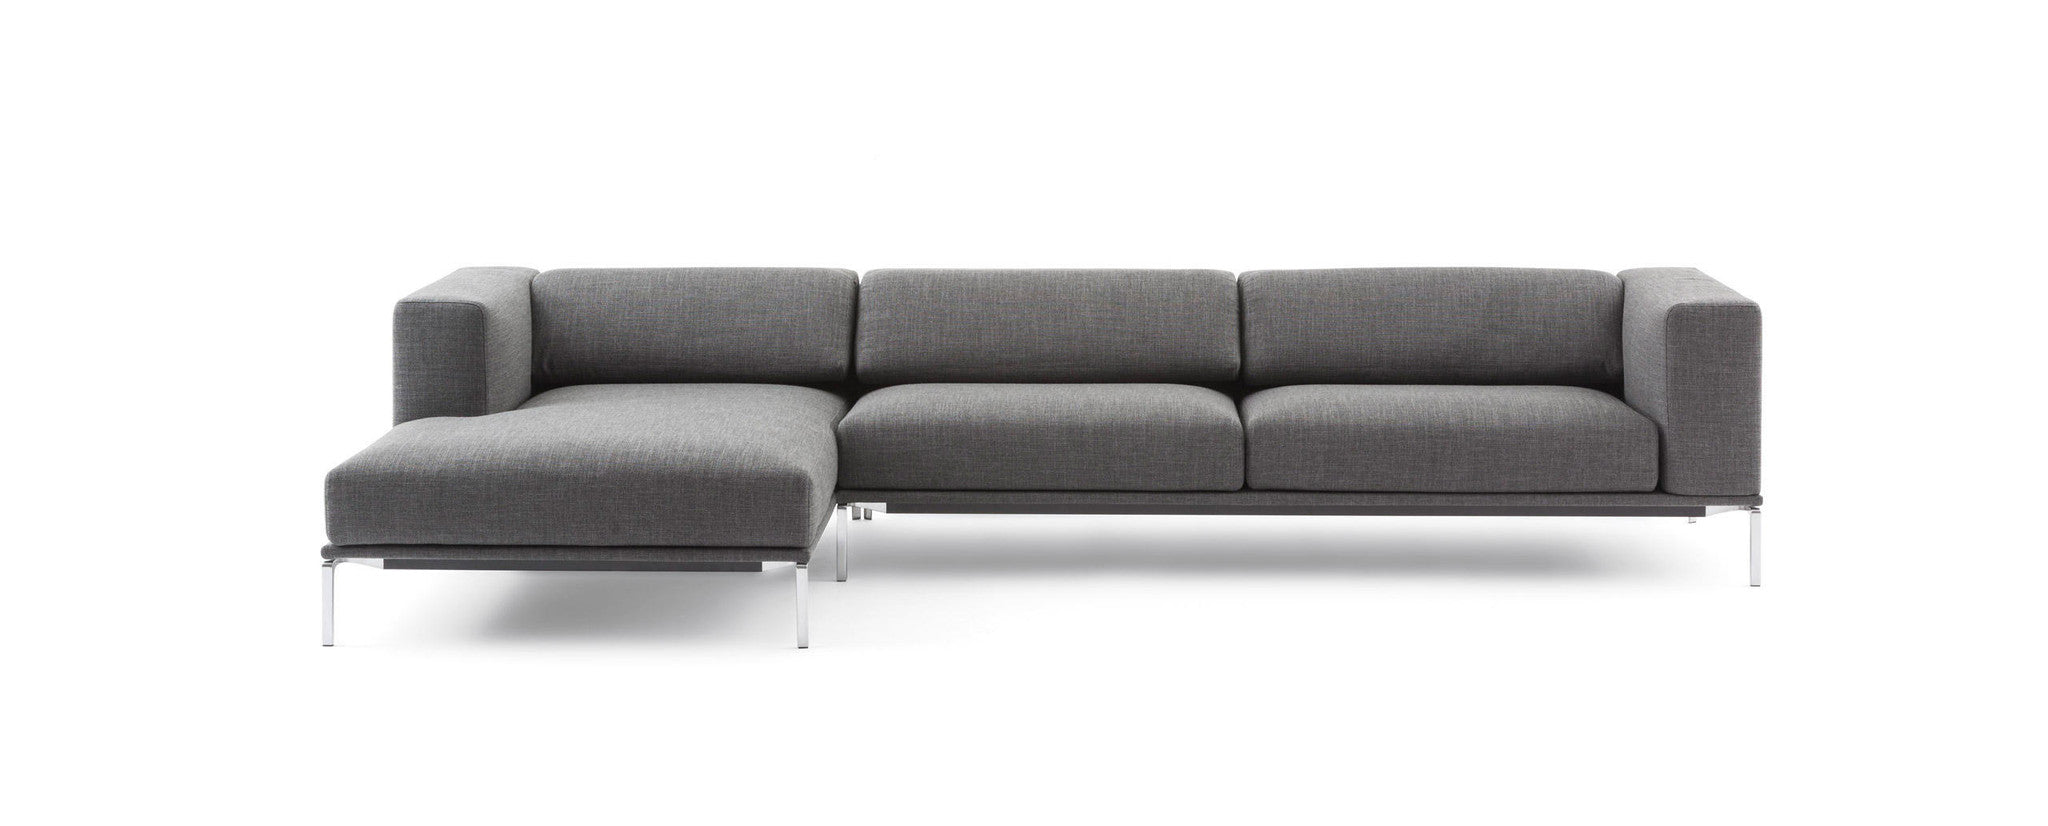 moov sofas and sectionals by cassina at the home resource. Black Bedroom Furniture Sets. Home Design Ideas